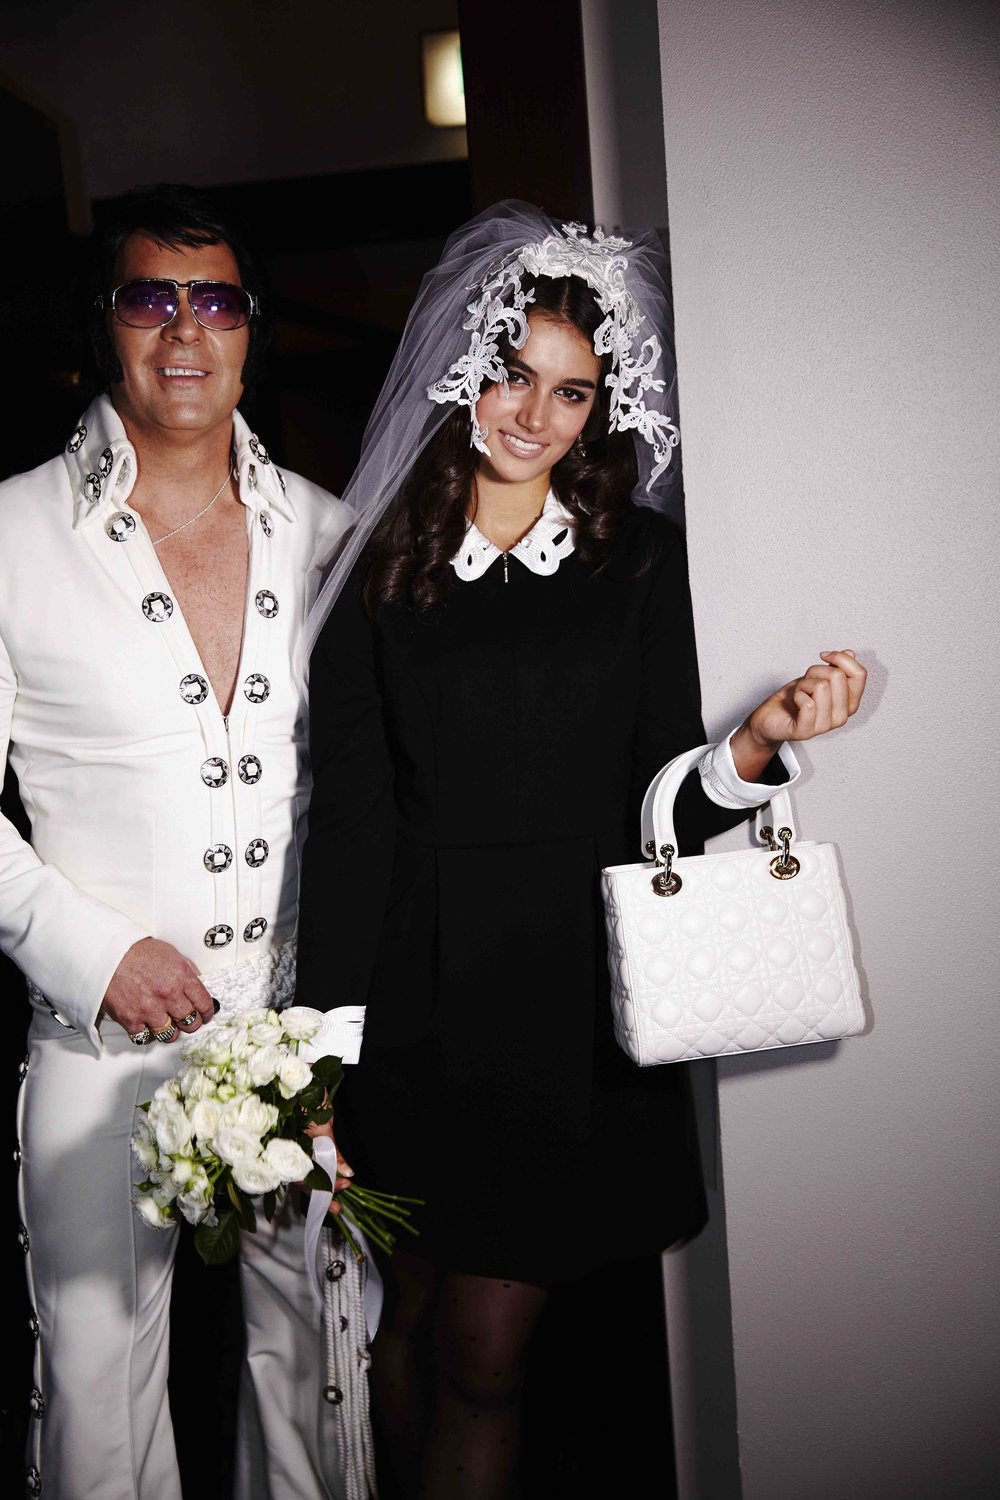 Priscilla and Elvis Bridal